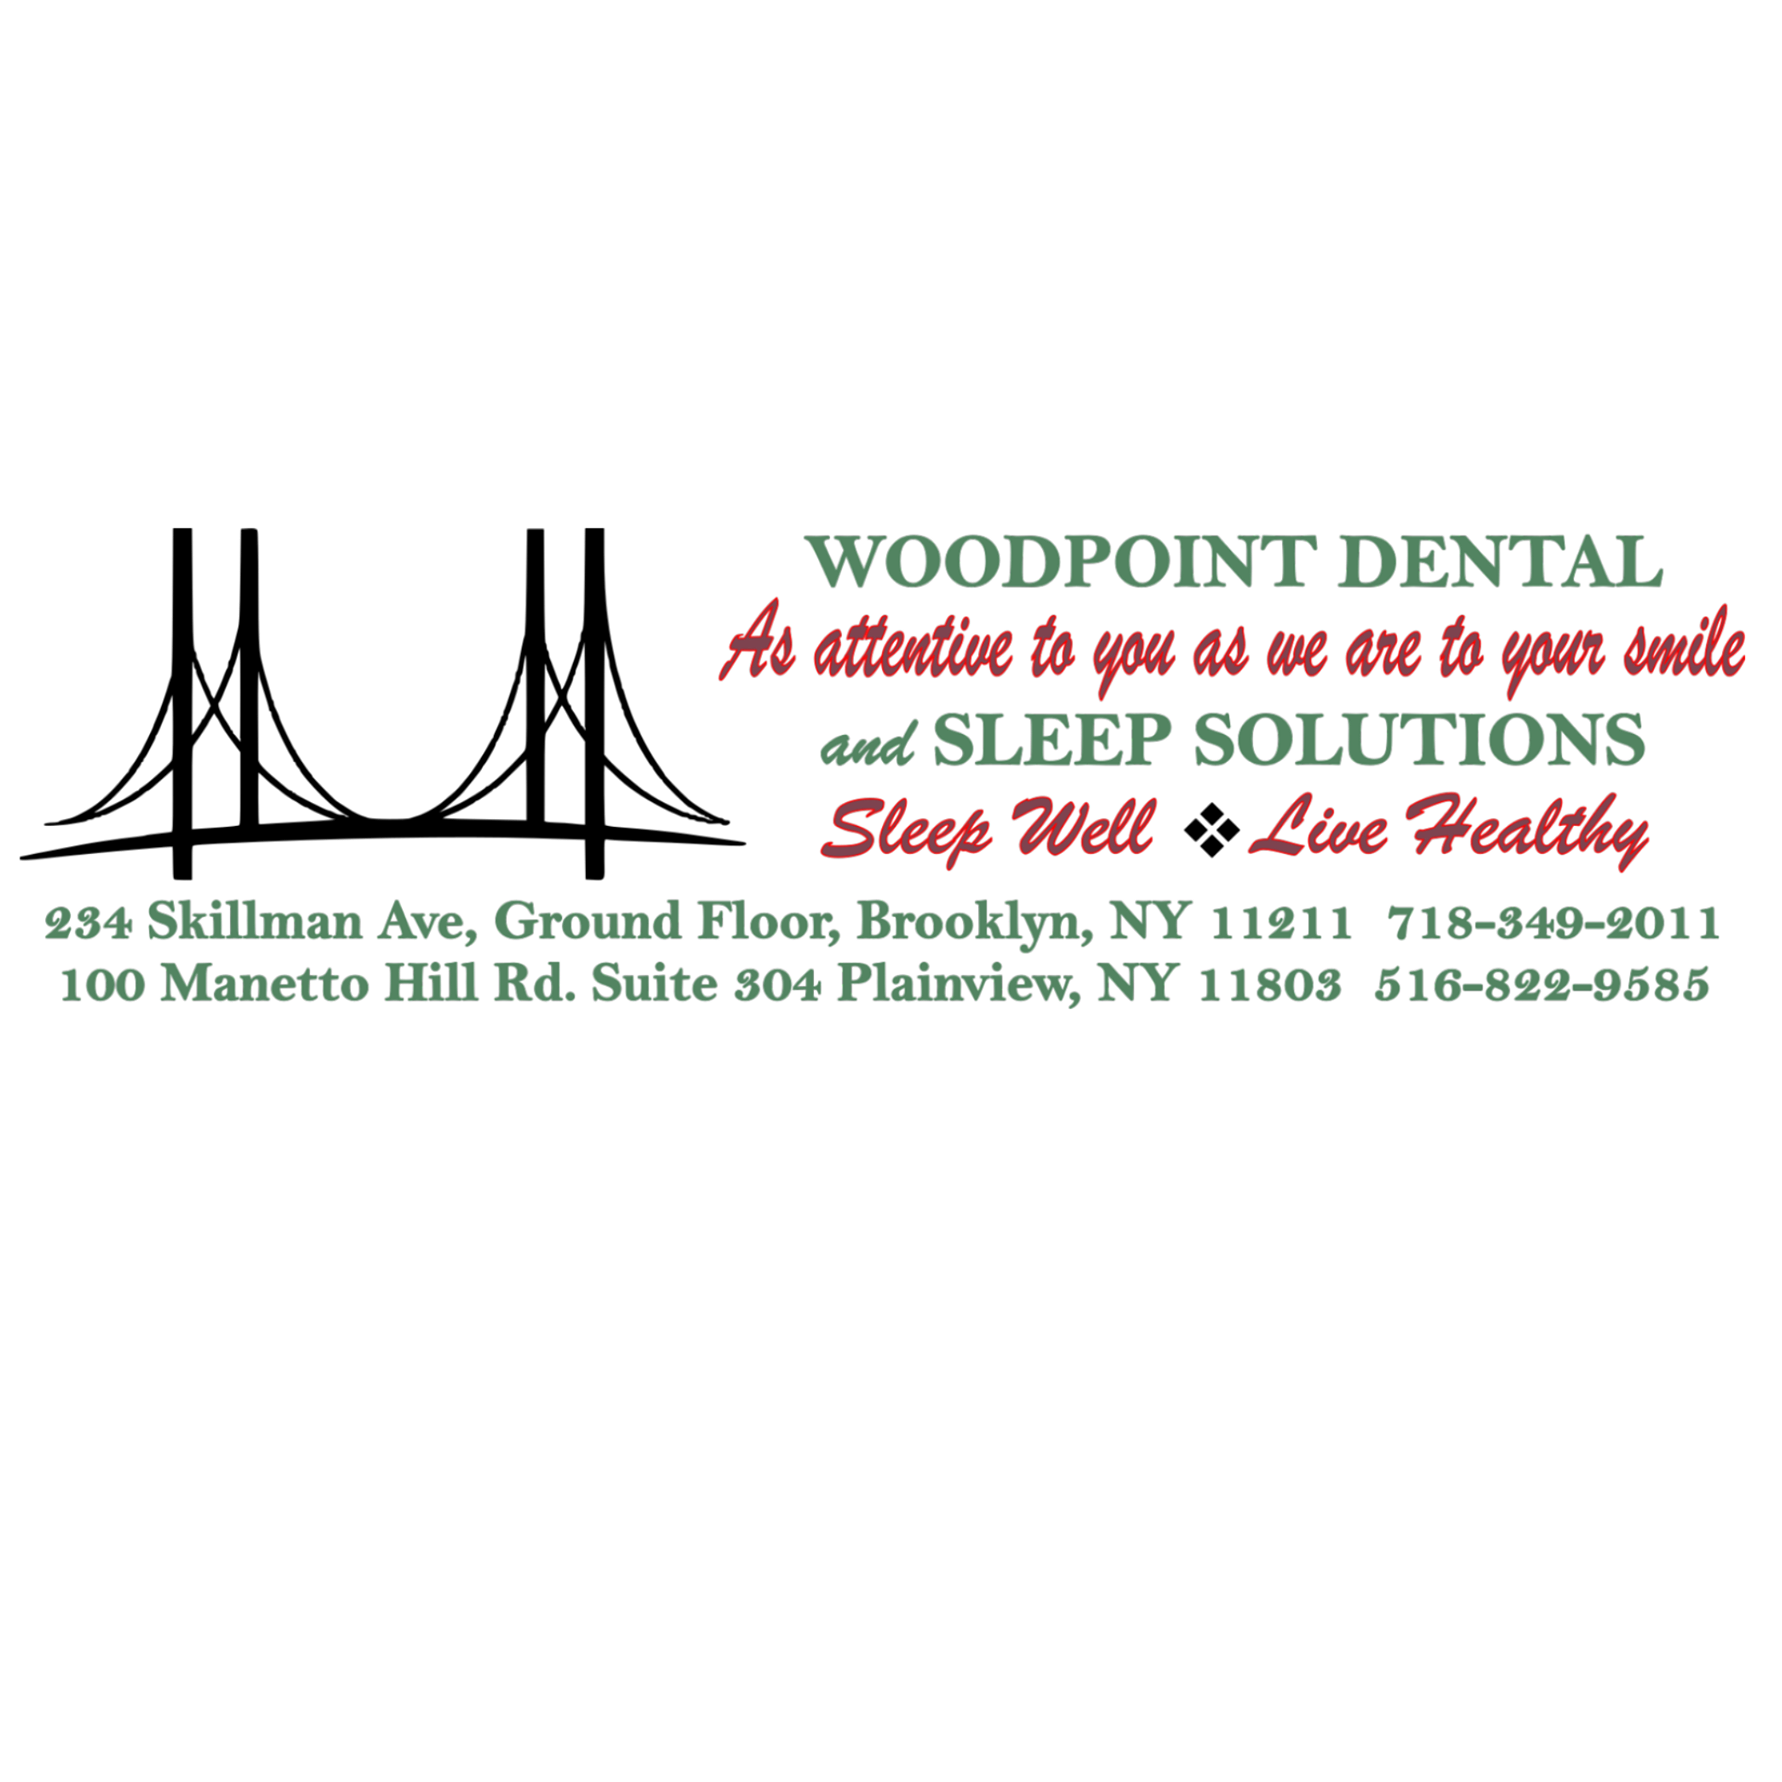 Woodpoint Dental